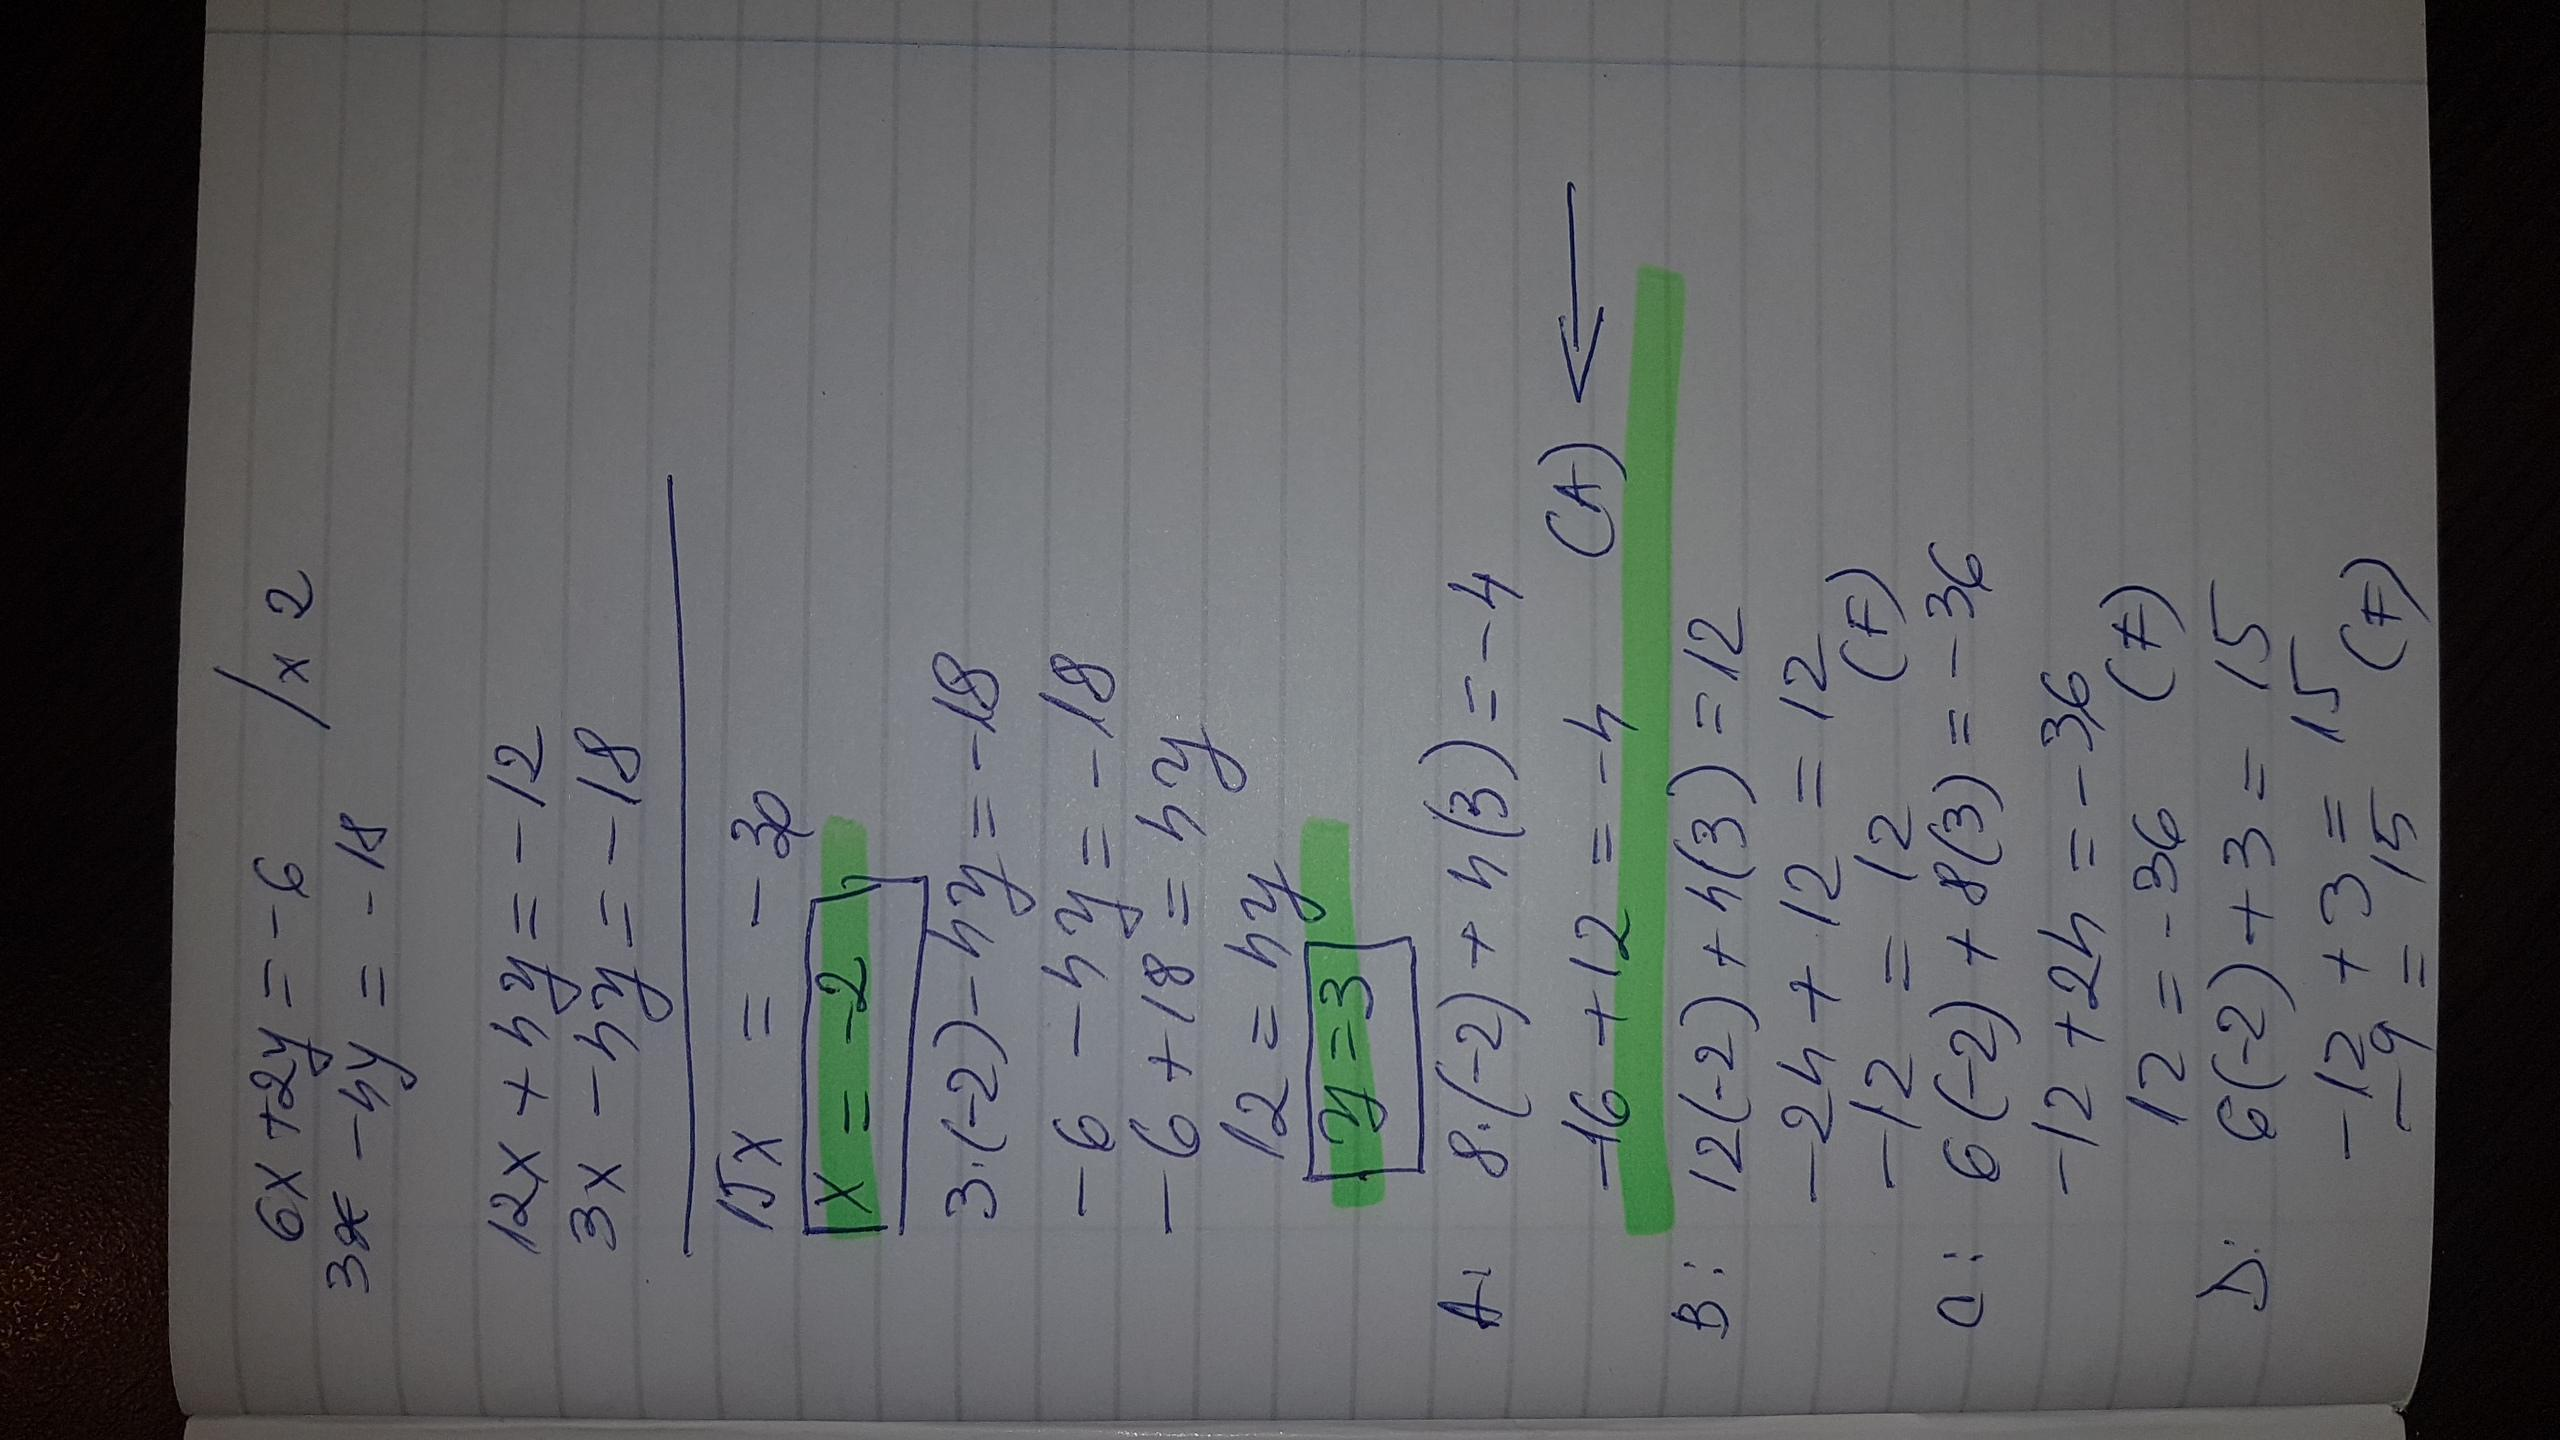 What is the length in units of line ac? - Answers